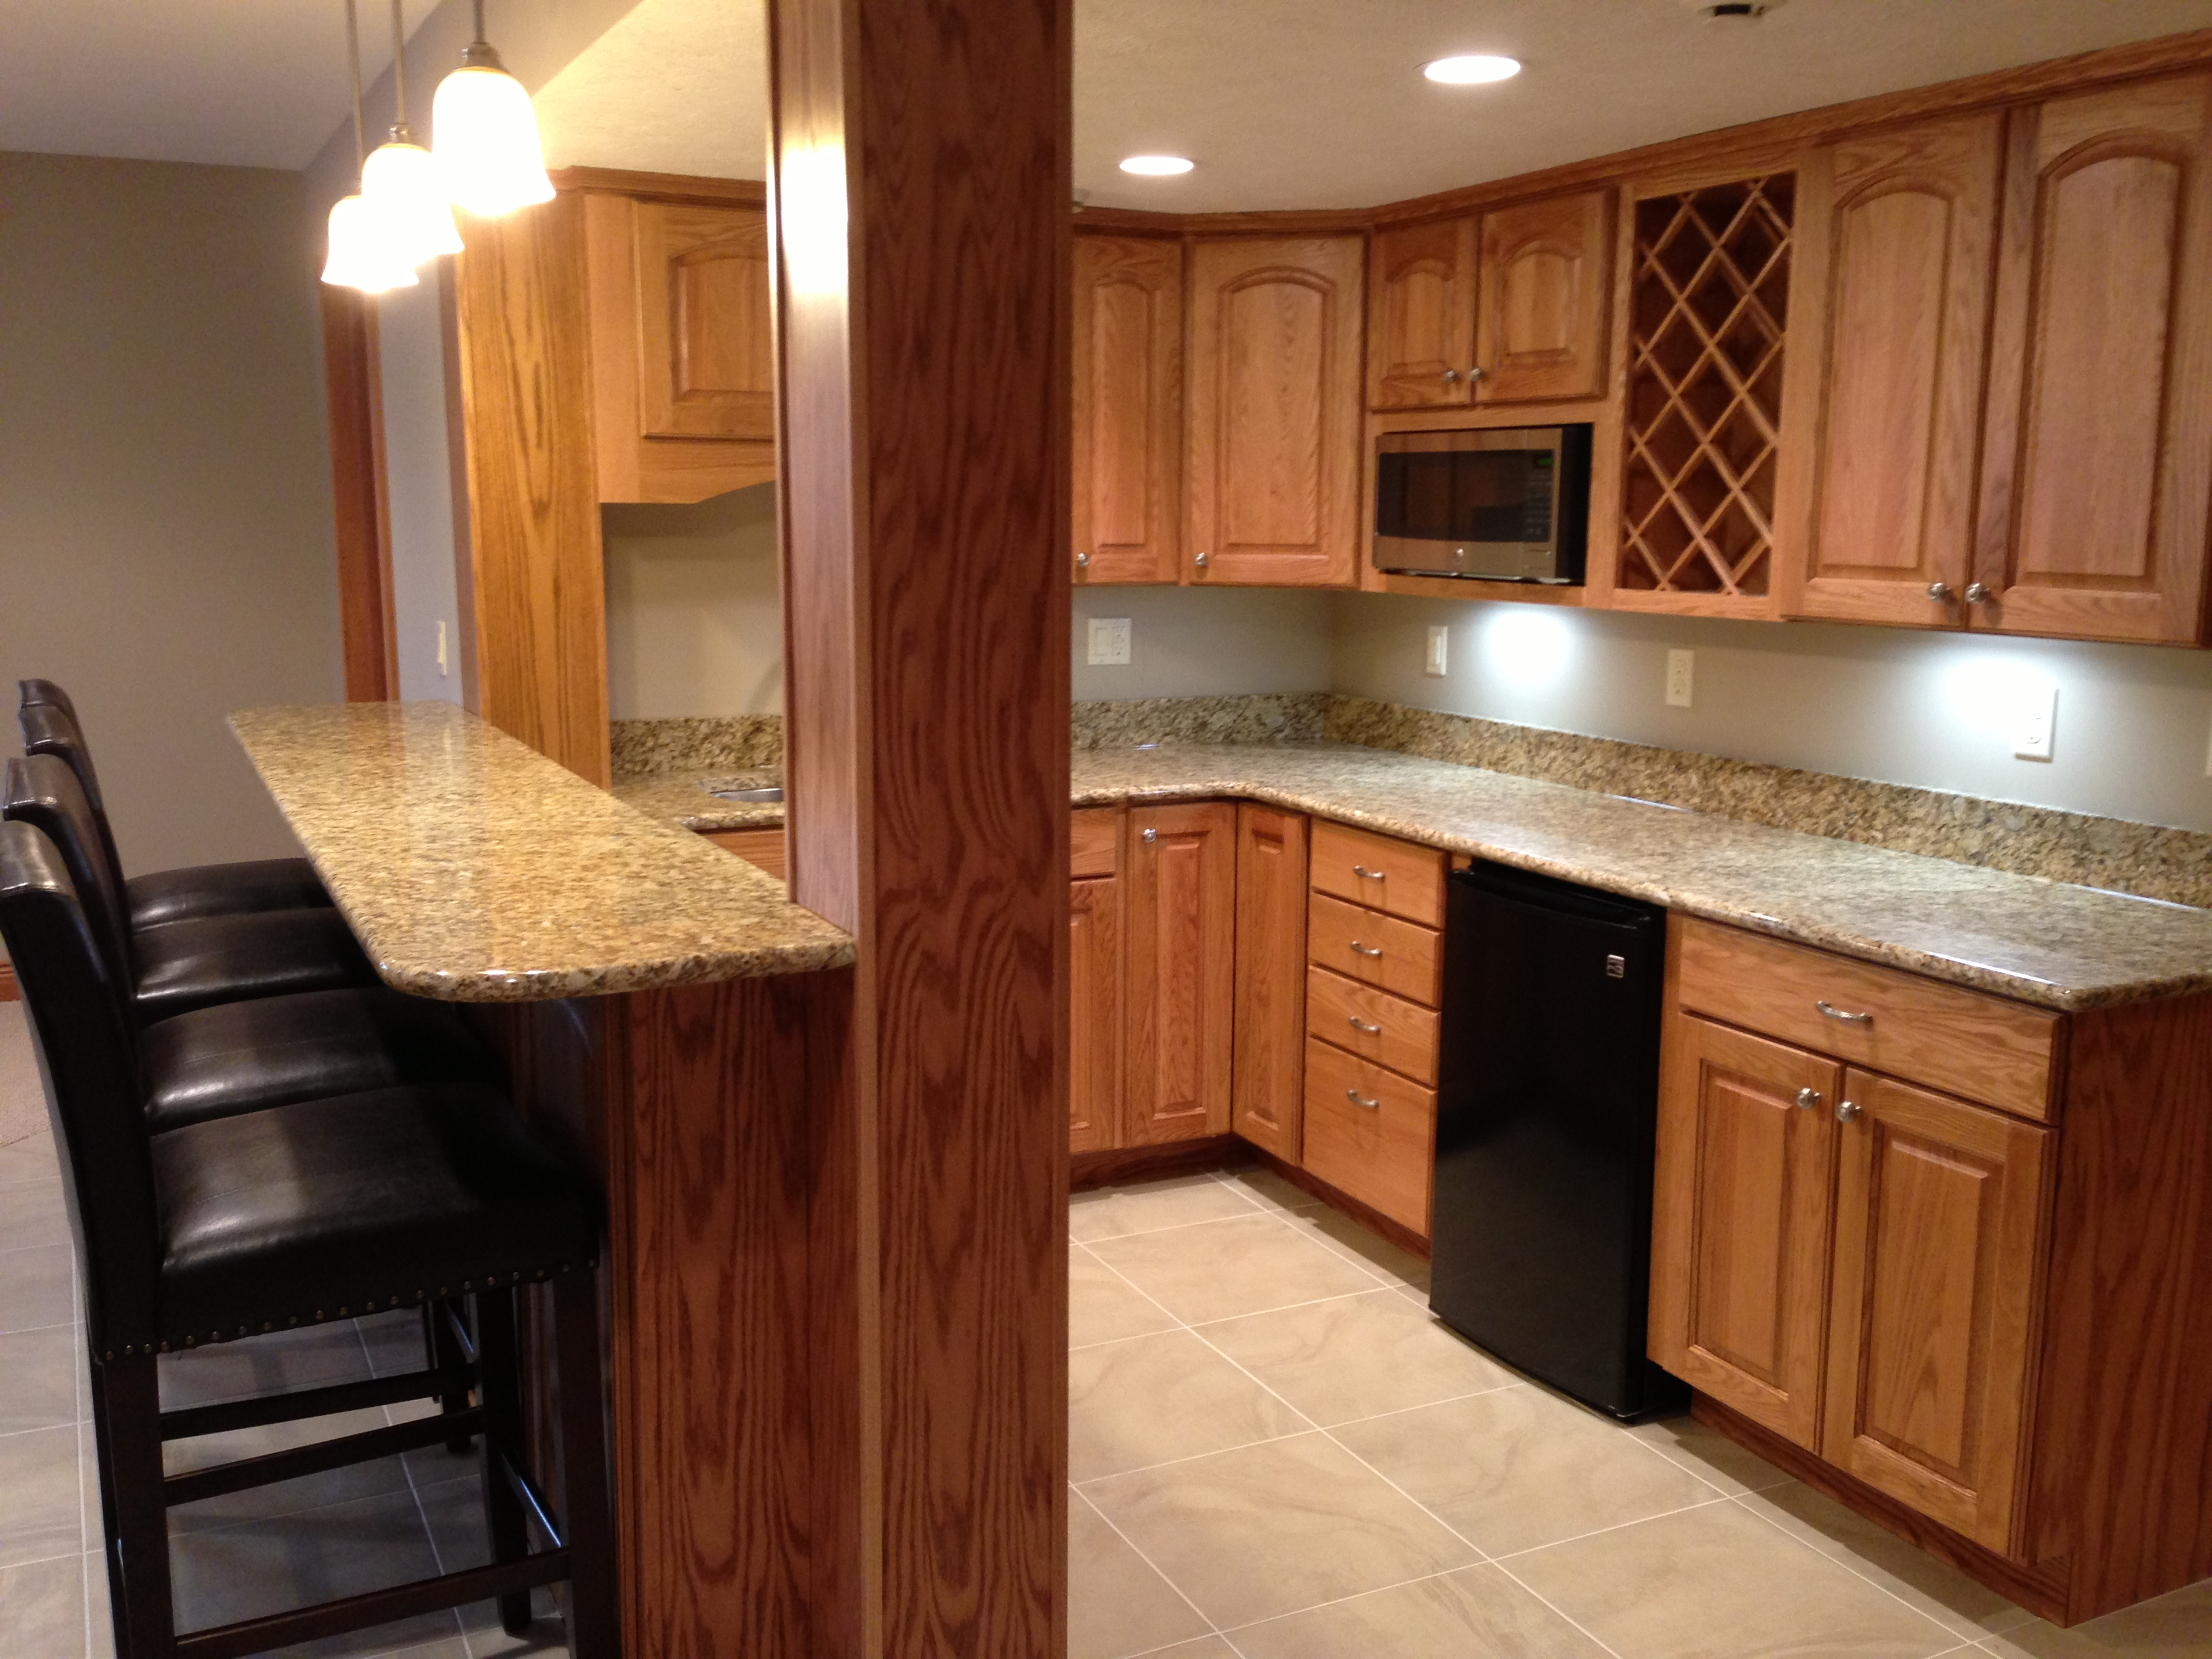 U201cLast Summer, We Asked Vic Brown Of Michigan Valley Homes To Do A Complete  Remodel Of Our Kitchen, Made Even More Complicated Because We Wanted To  Extend ...